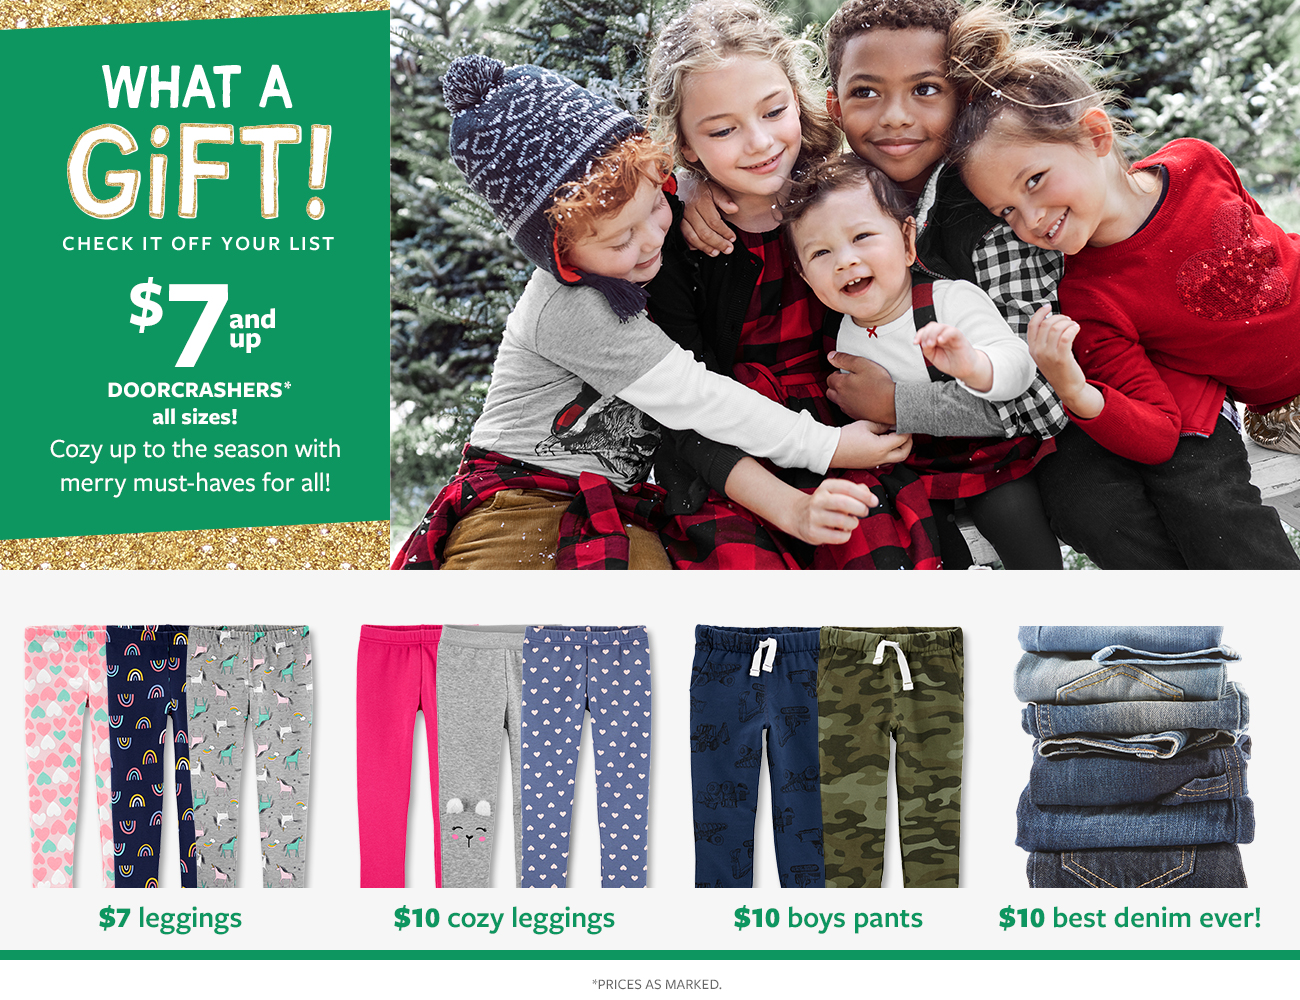 what a gift! check it off your list   $7 and up doorcrashers all sizes!   cozy up to the season with merry must-haves for all!